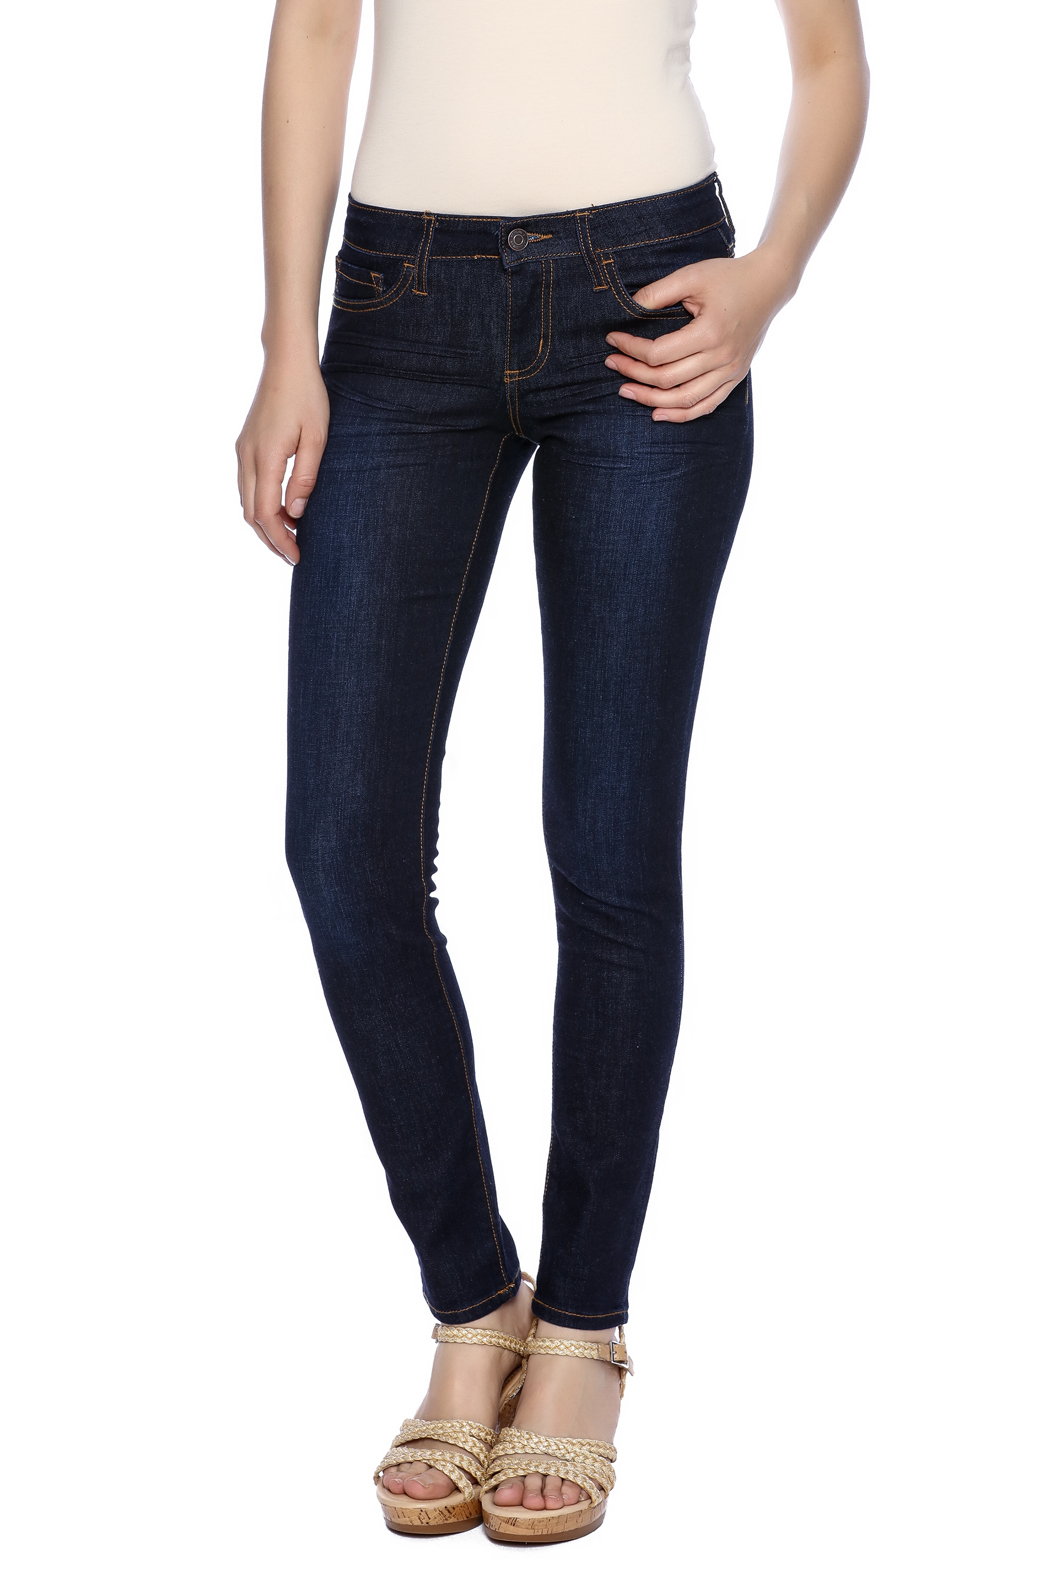 Klique B Dark Rinse Skinny Jean - Front Cropped Image